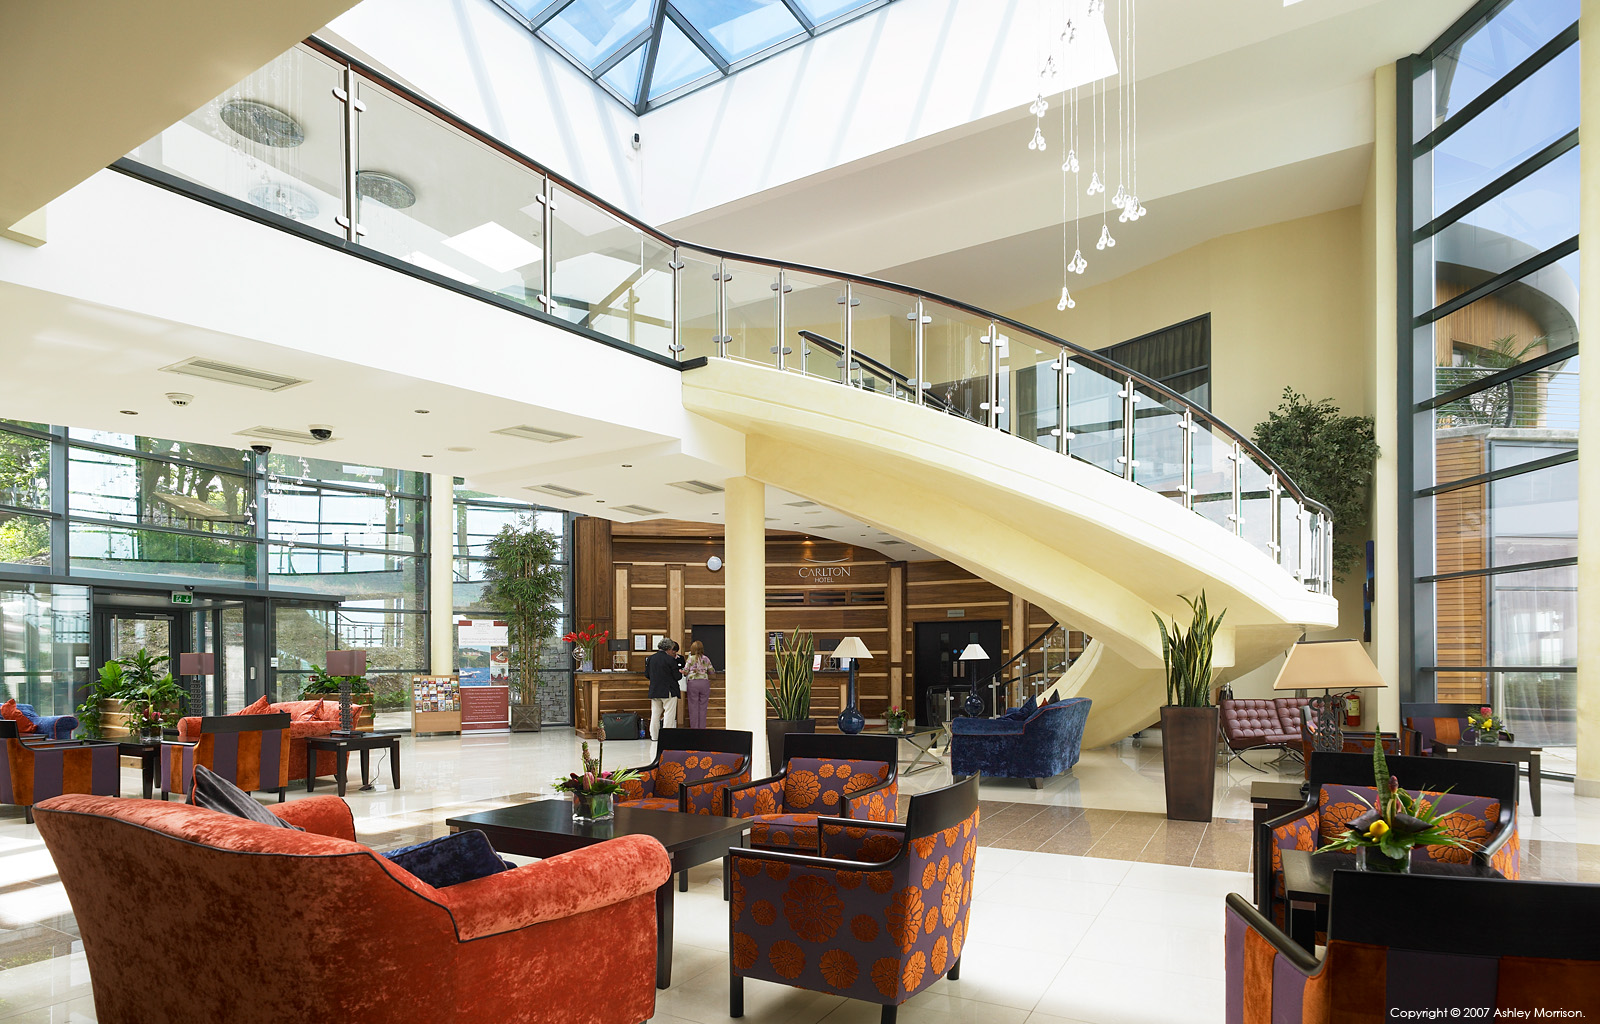 The Lobby & Reception area at the Macdonald Kinsale Hotel & Spa in County Cork.